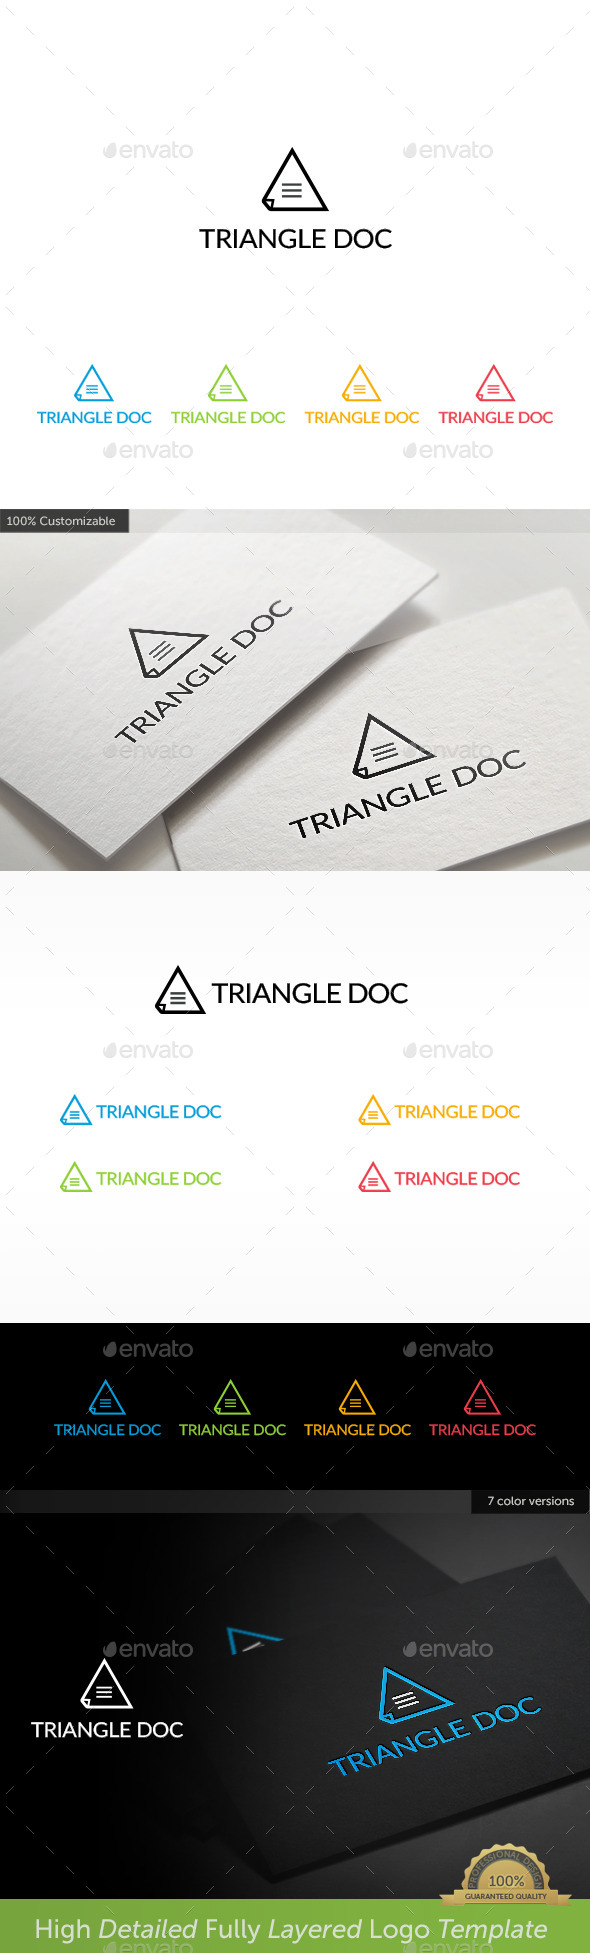 GraphicRiver Triangle Document Logo 11330448